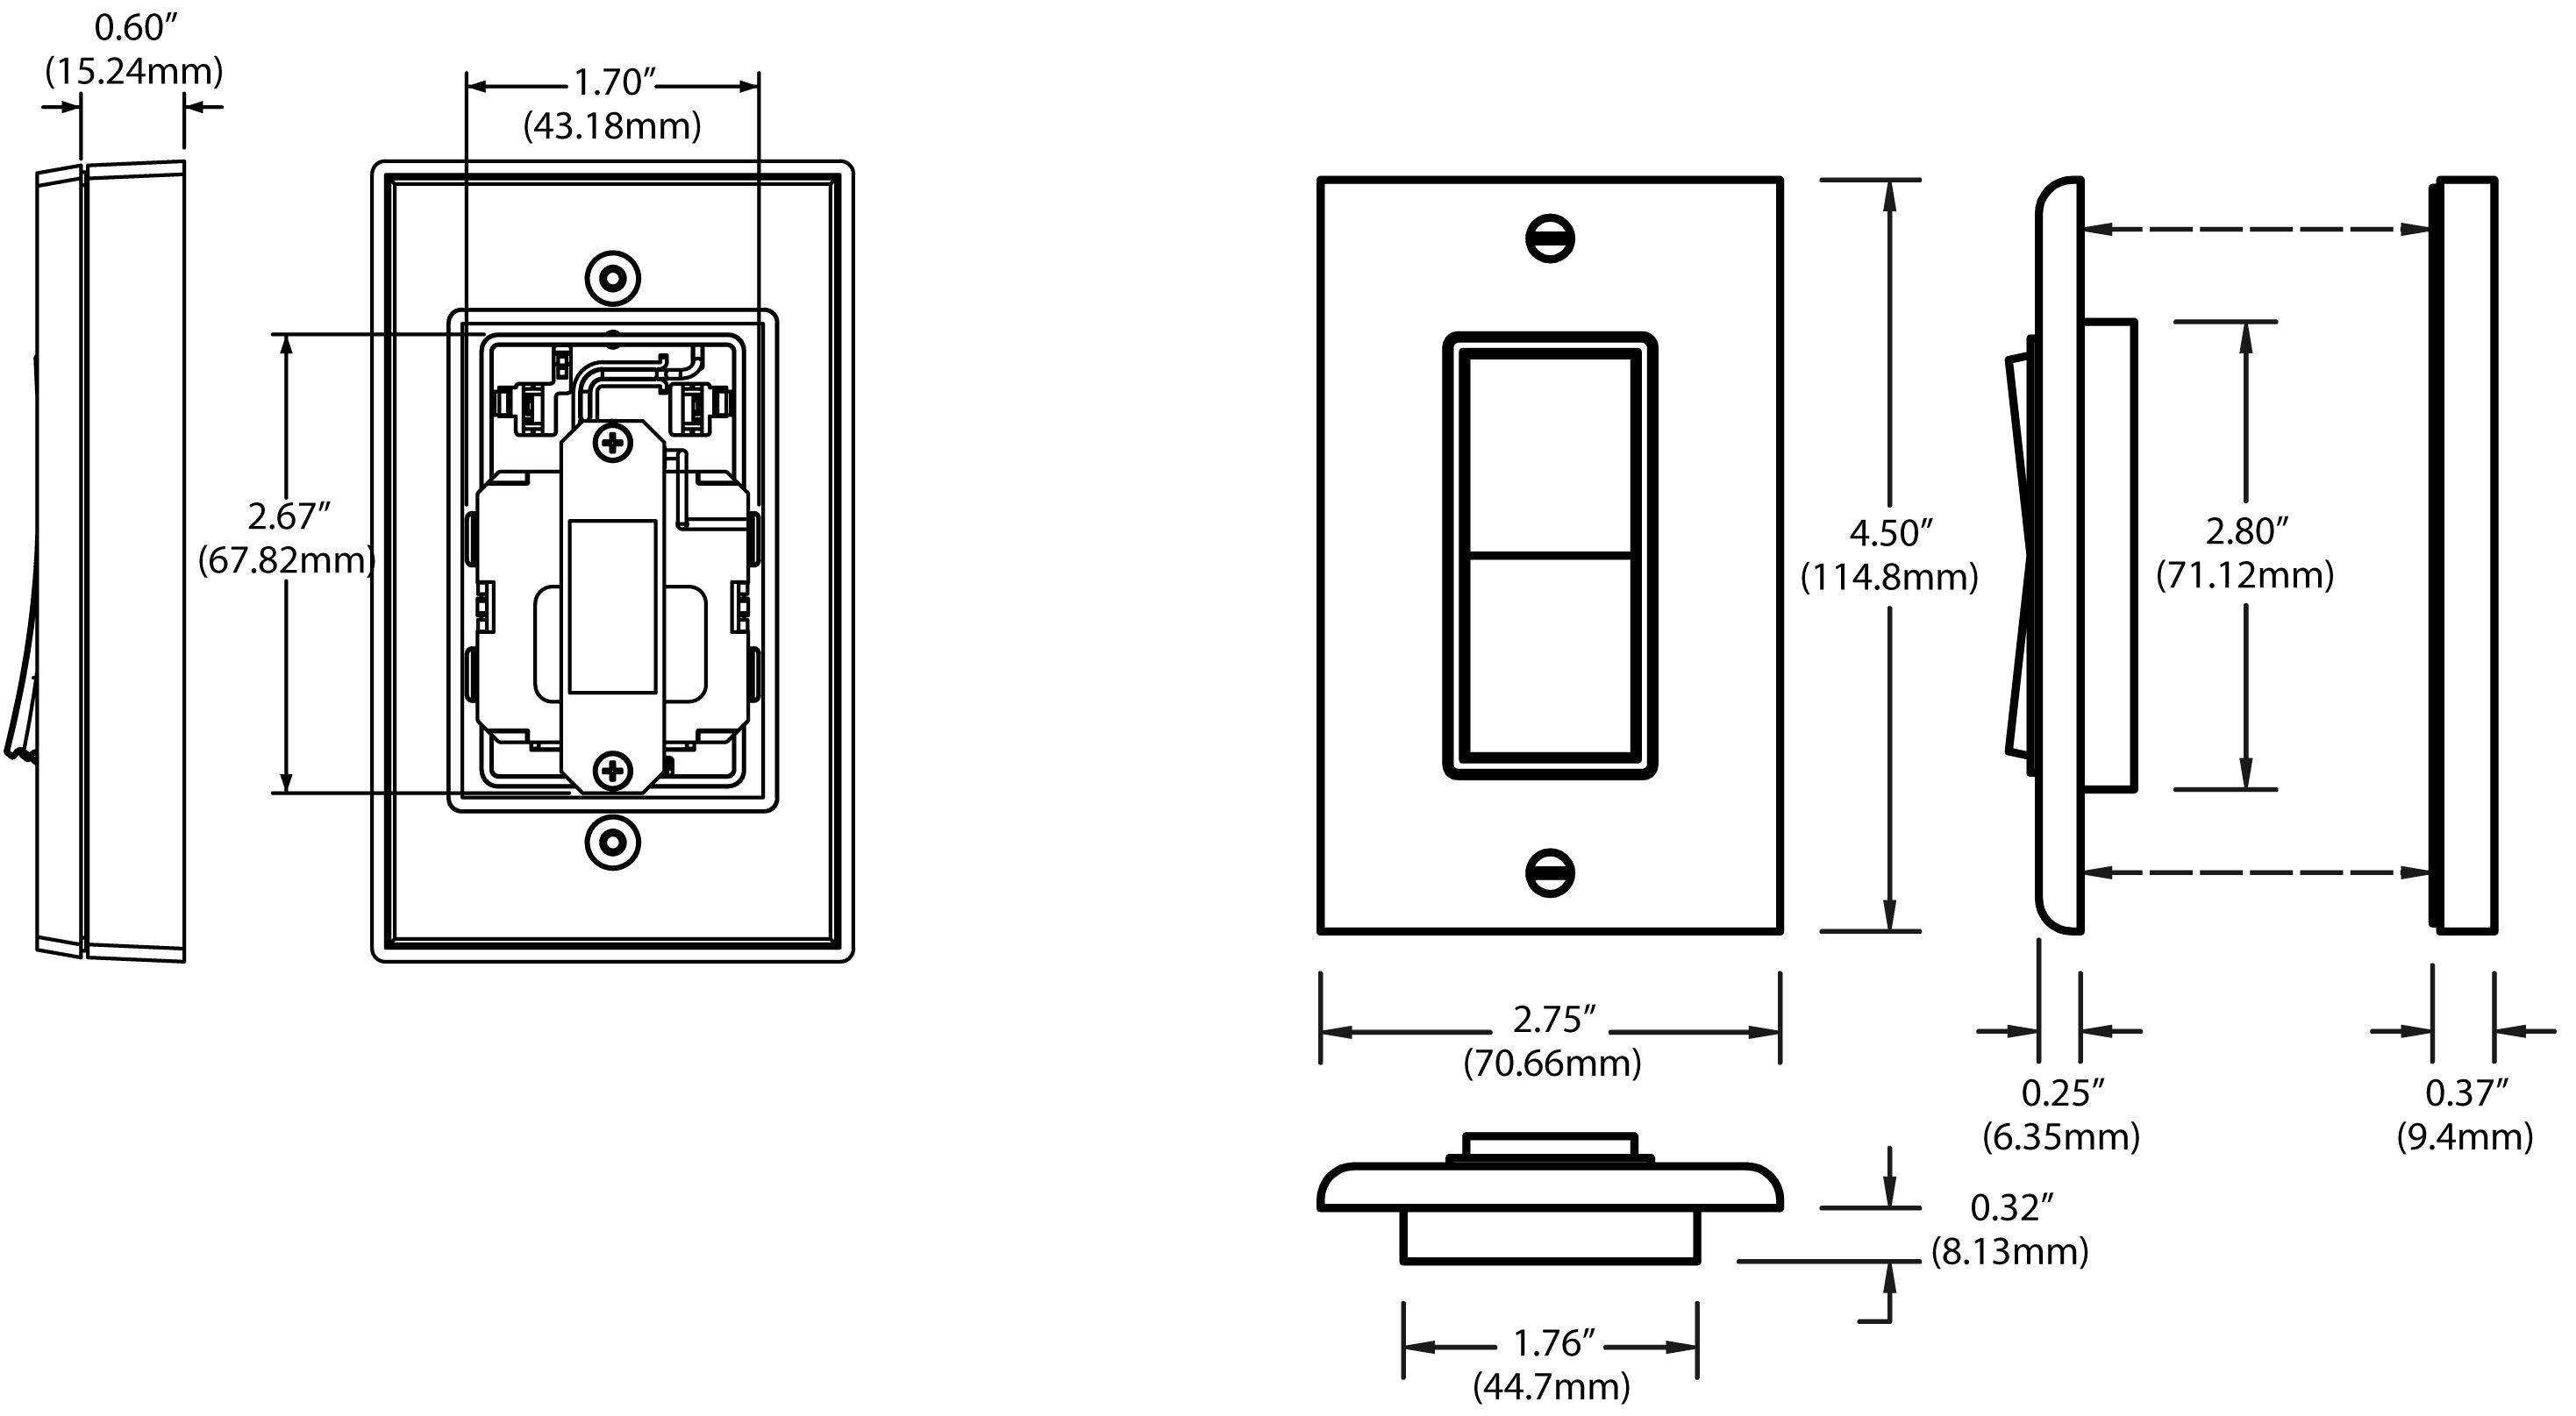 Beautiful Leviton Light Switch Wiring Diagram Diagrams Digramssample Diagramimages Wiringdiagramsampl Light Switch Wiring 3 Way Switch Wiring Dimmer Switch